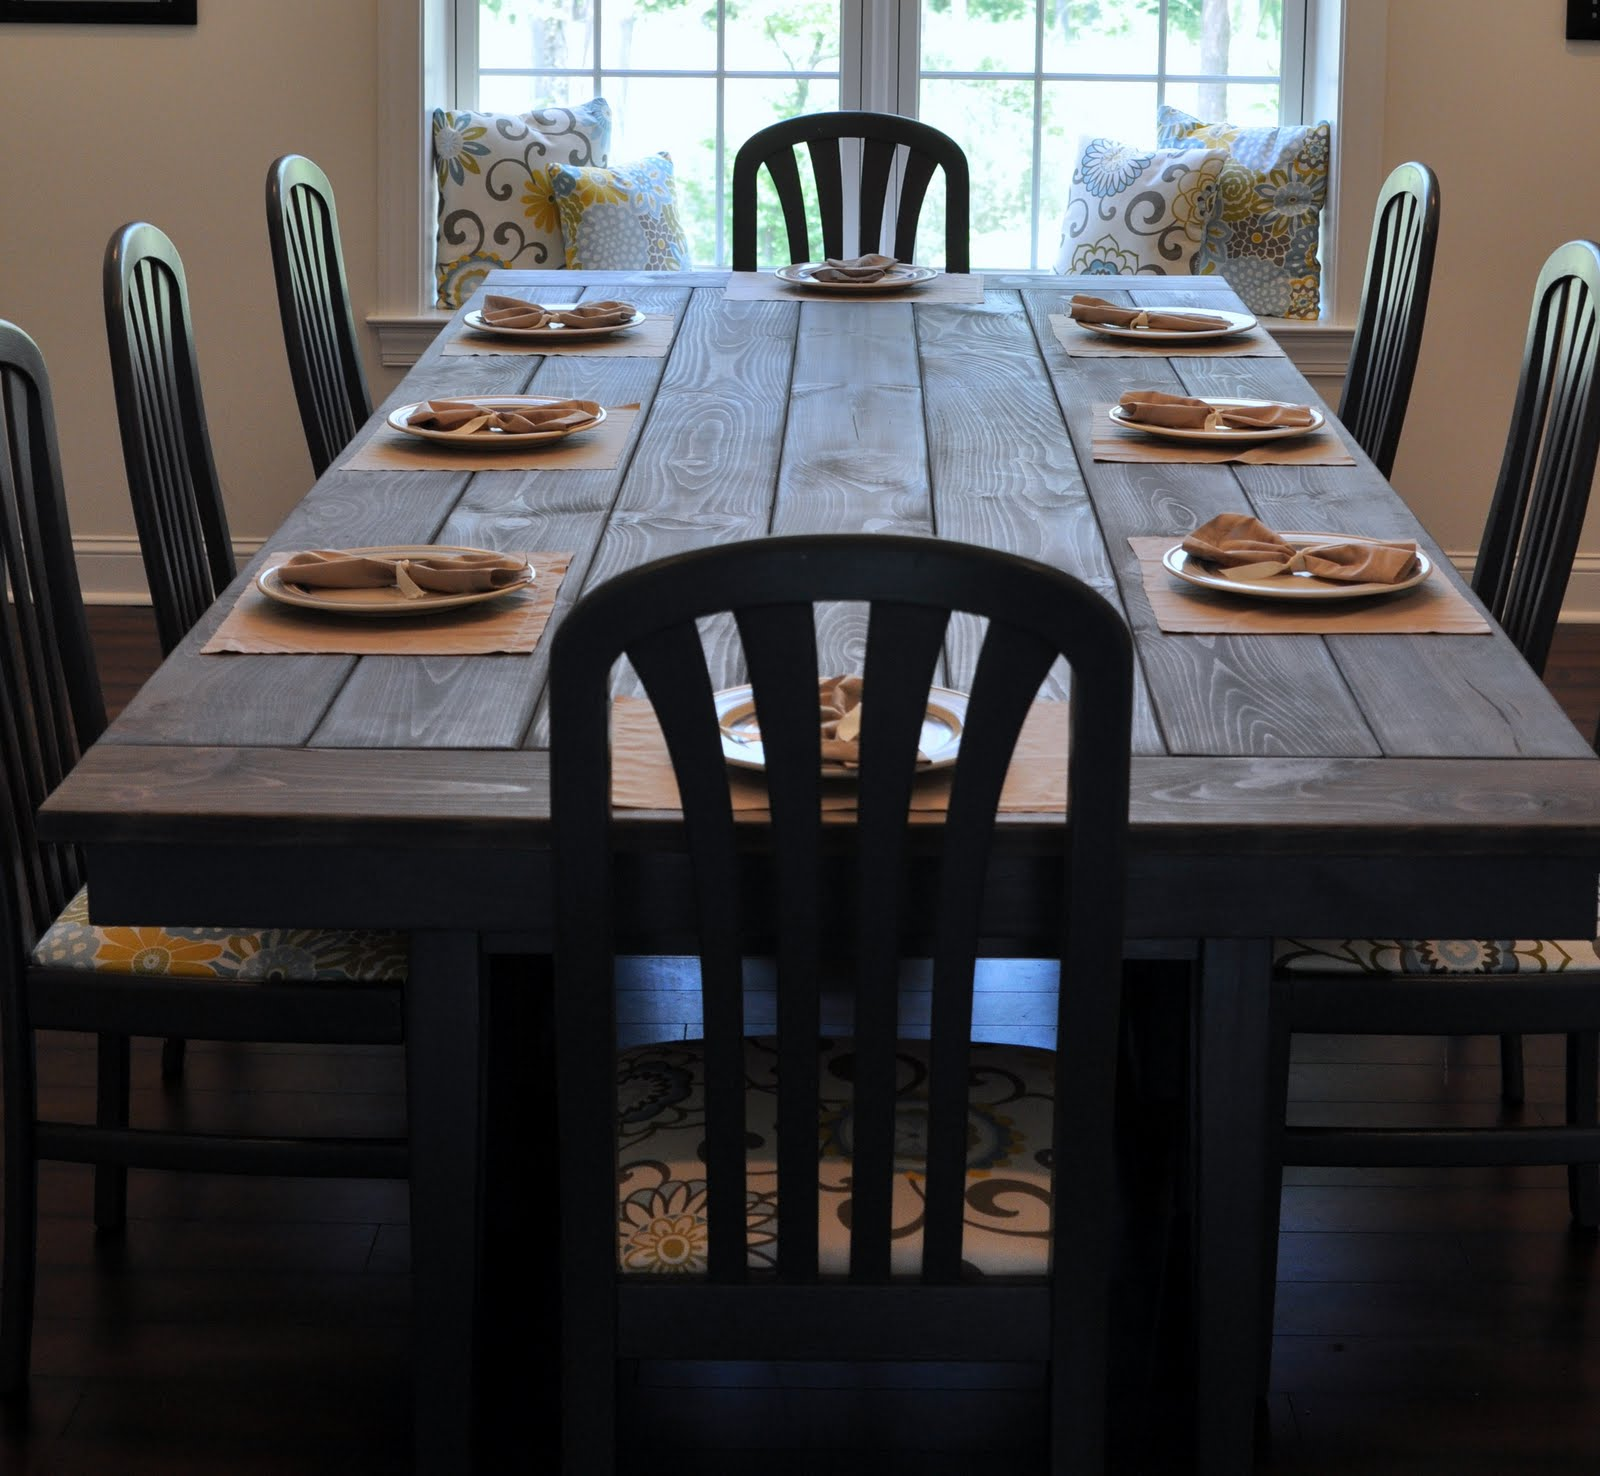 Farmhouse table remix how to build a farmhouse table Table making ideas